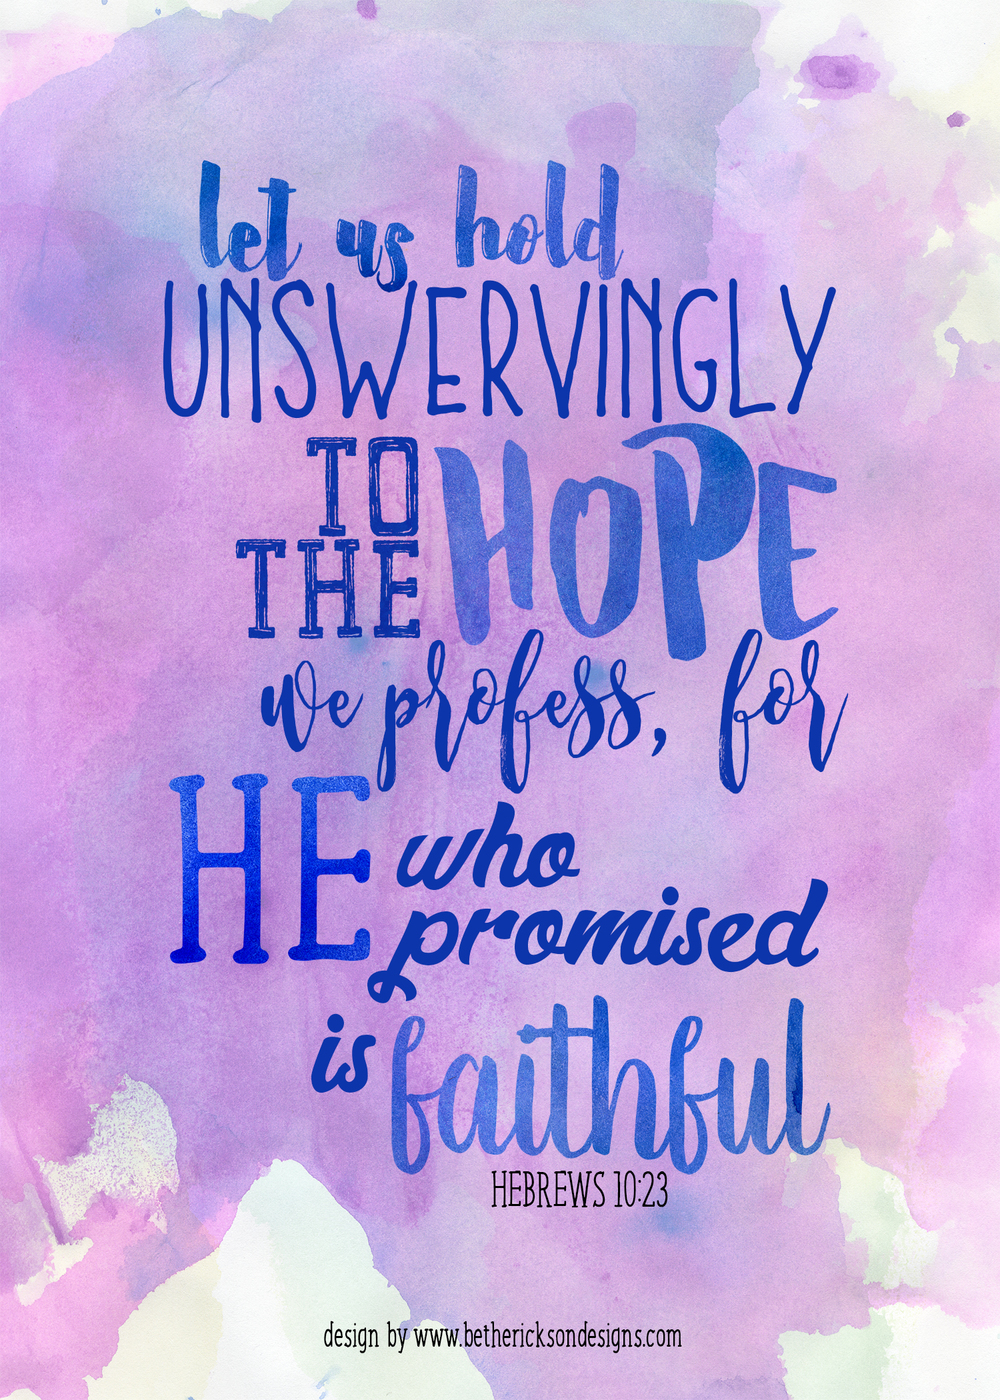 hebrews1023.jpg